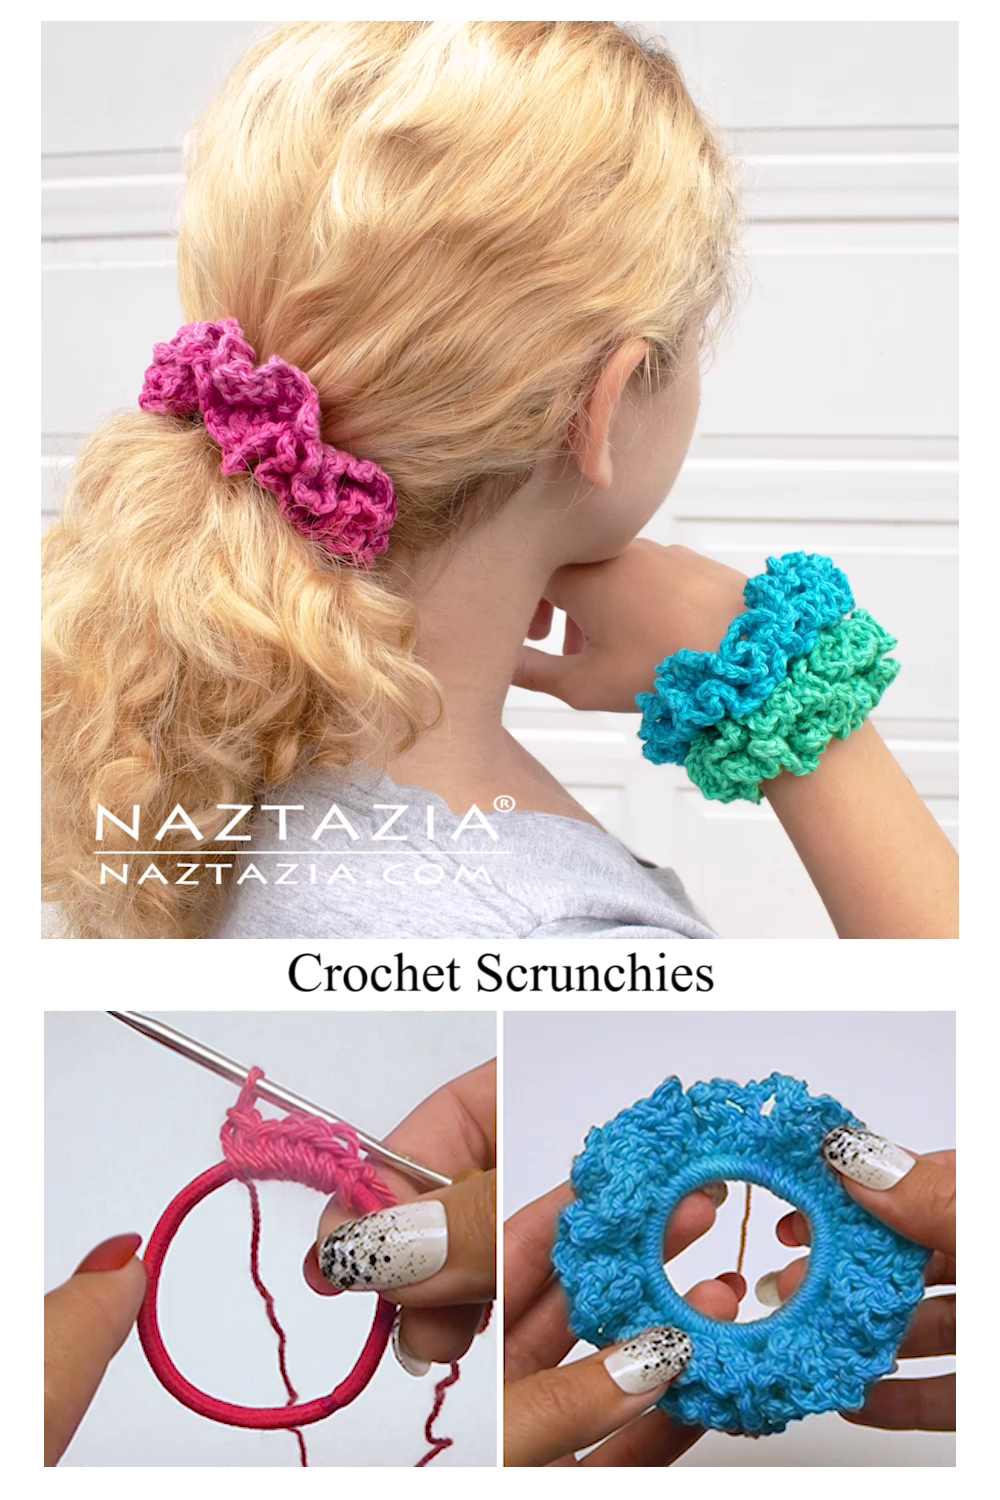 Crochet Scrunchies for Hair Tutorial – Stricken & Co.